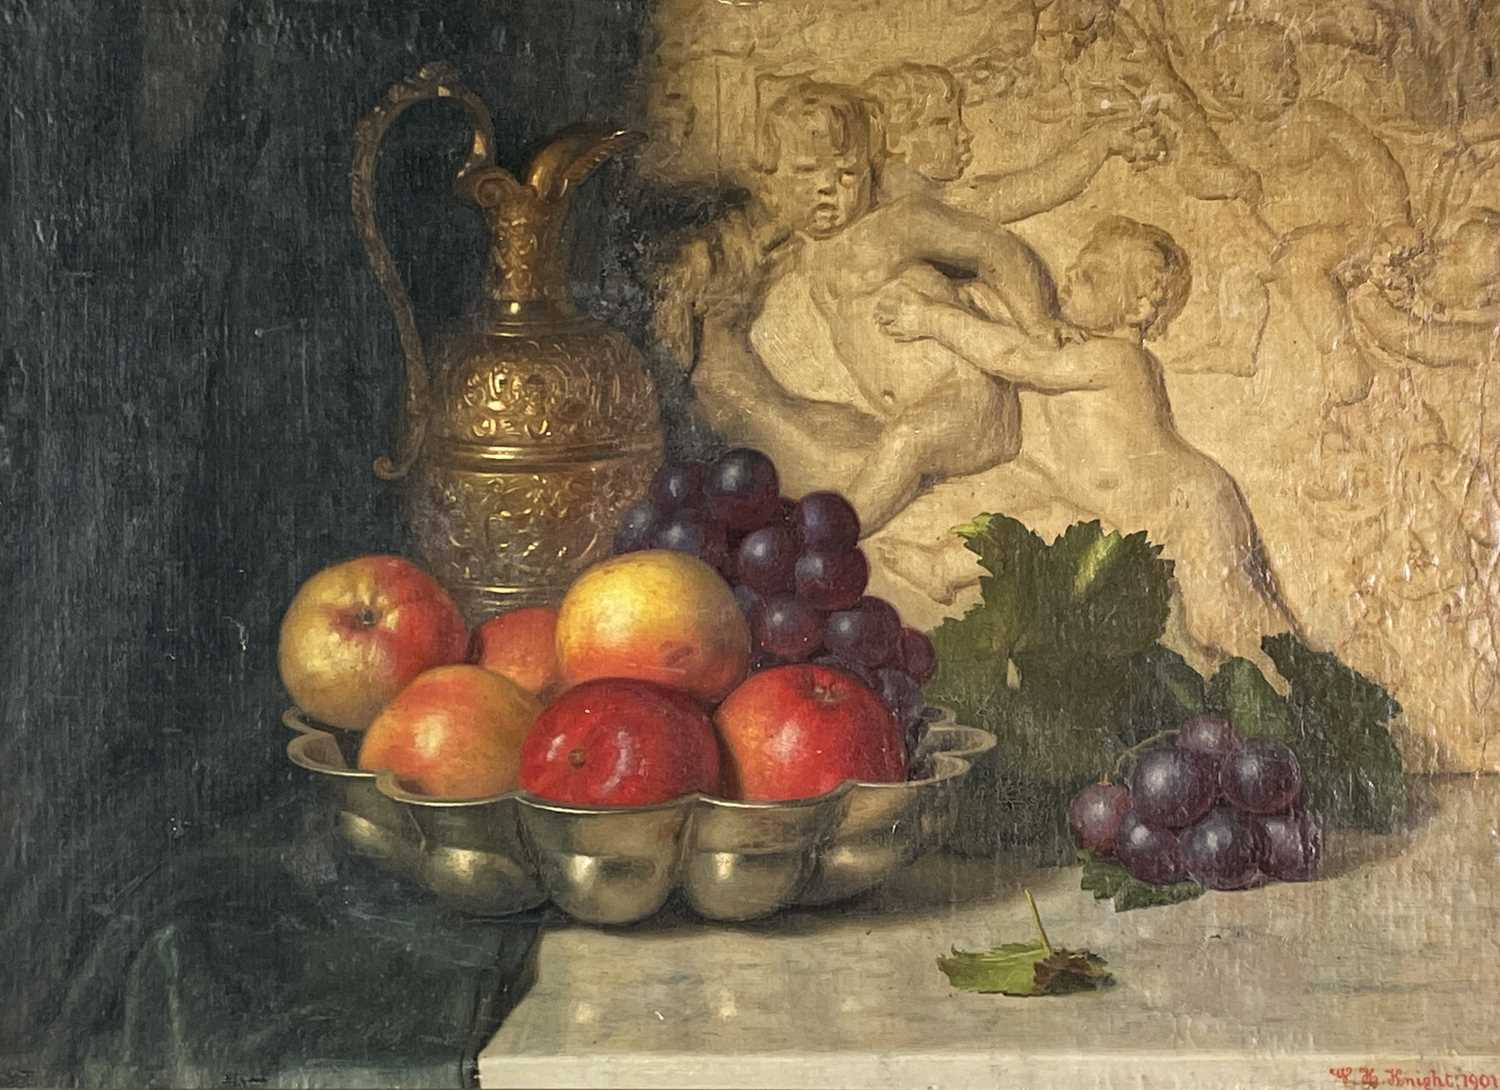 W. H. KNIGHT Still Life after Caravaggio Oil on canvas laid down Signed and dated 1901